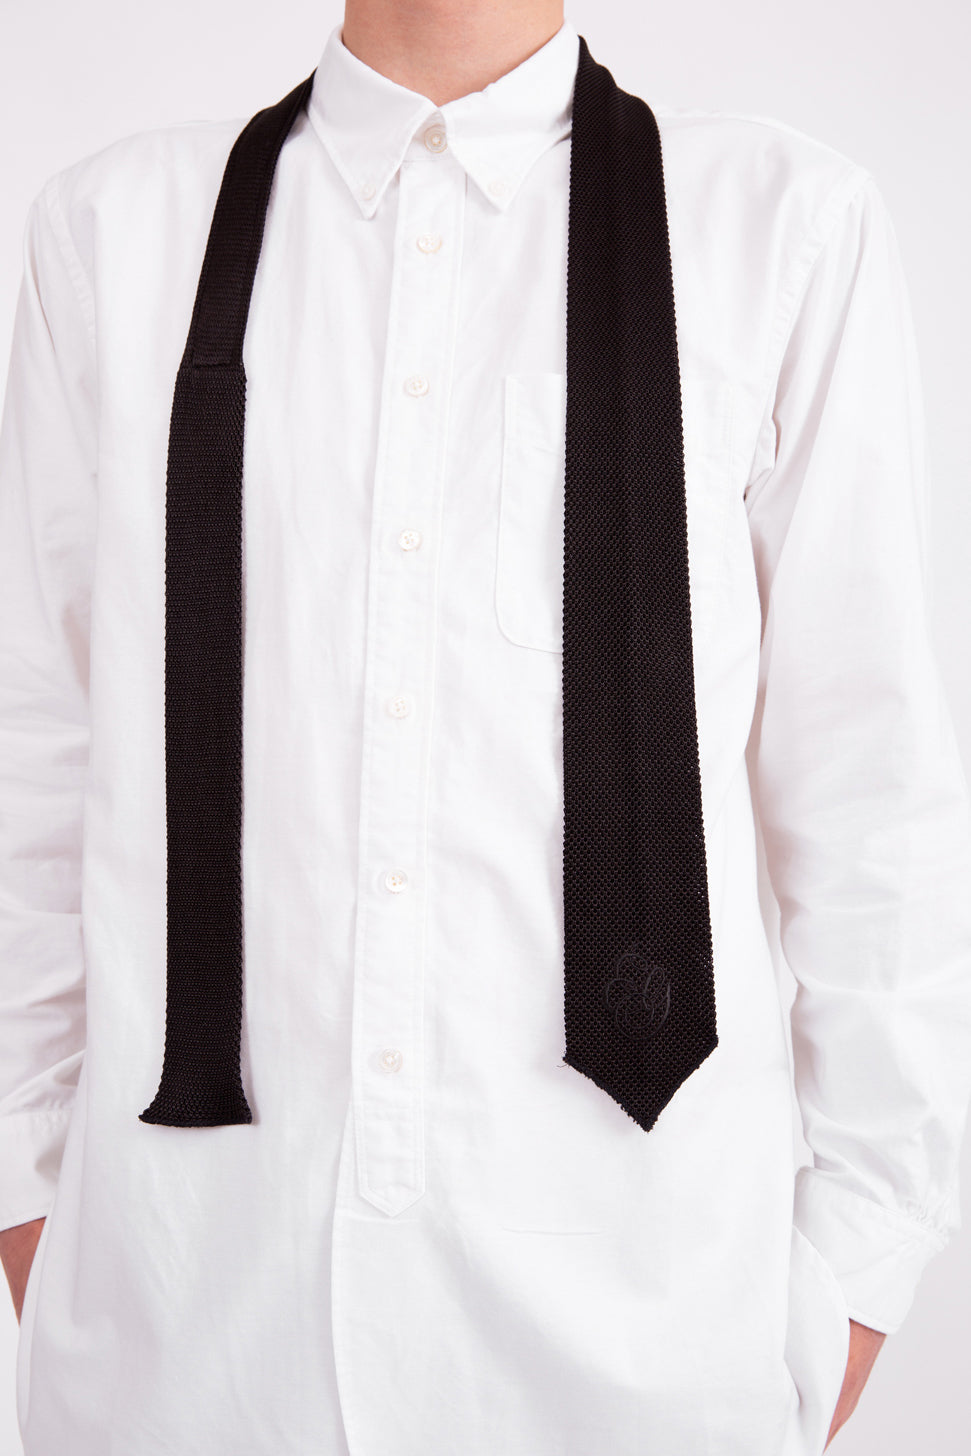 Knitted Black Silk Tie